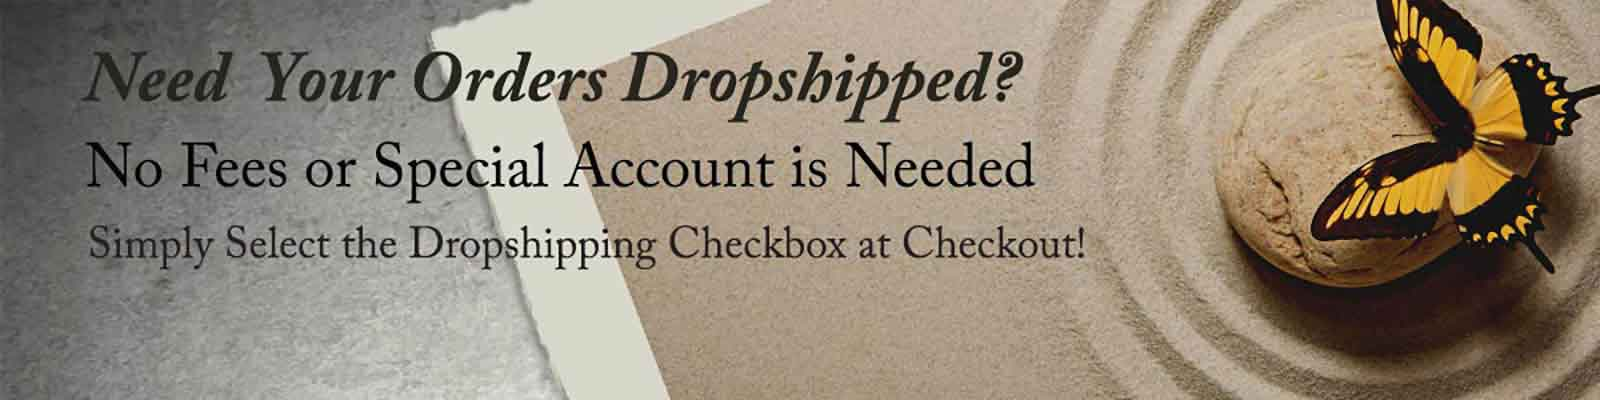 Need your orders dropshipped? No fees or special account is needed.